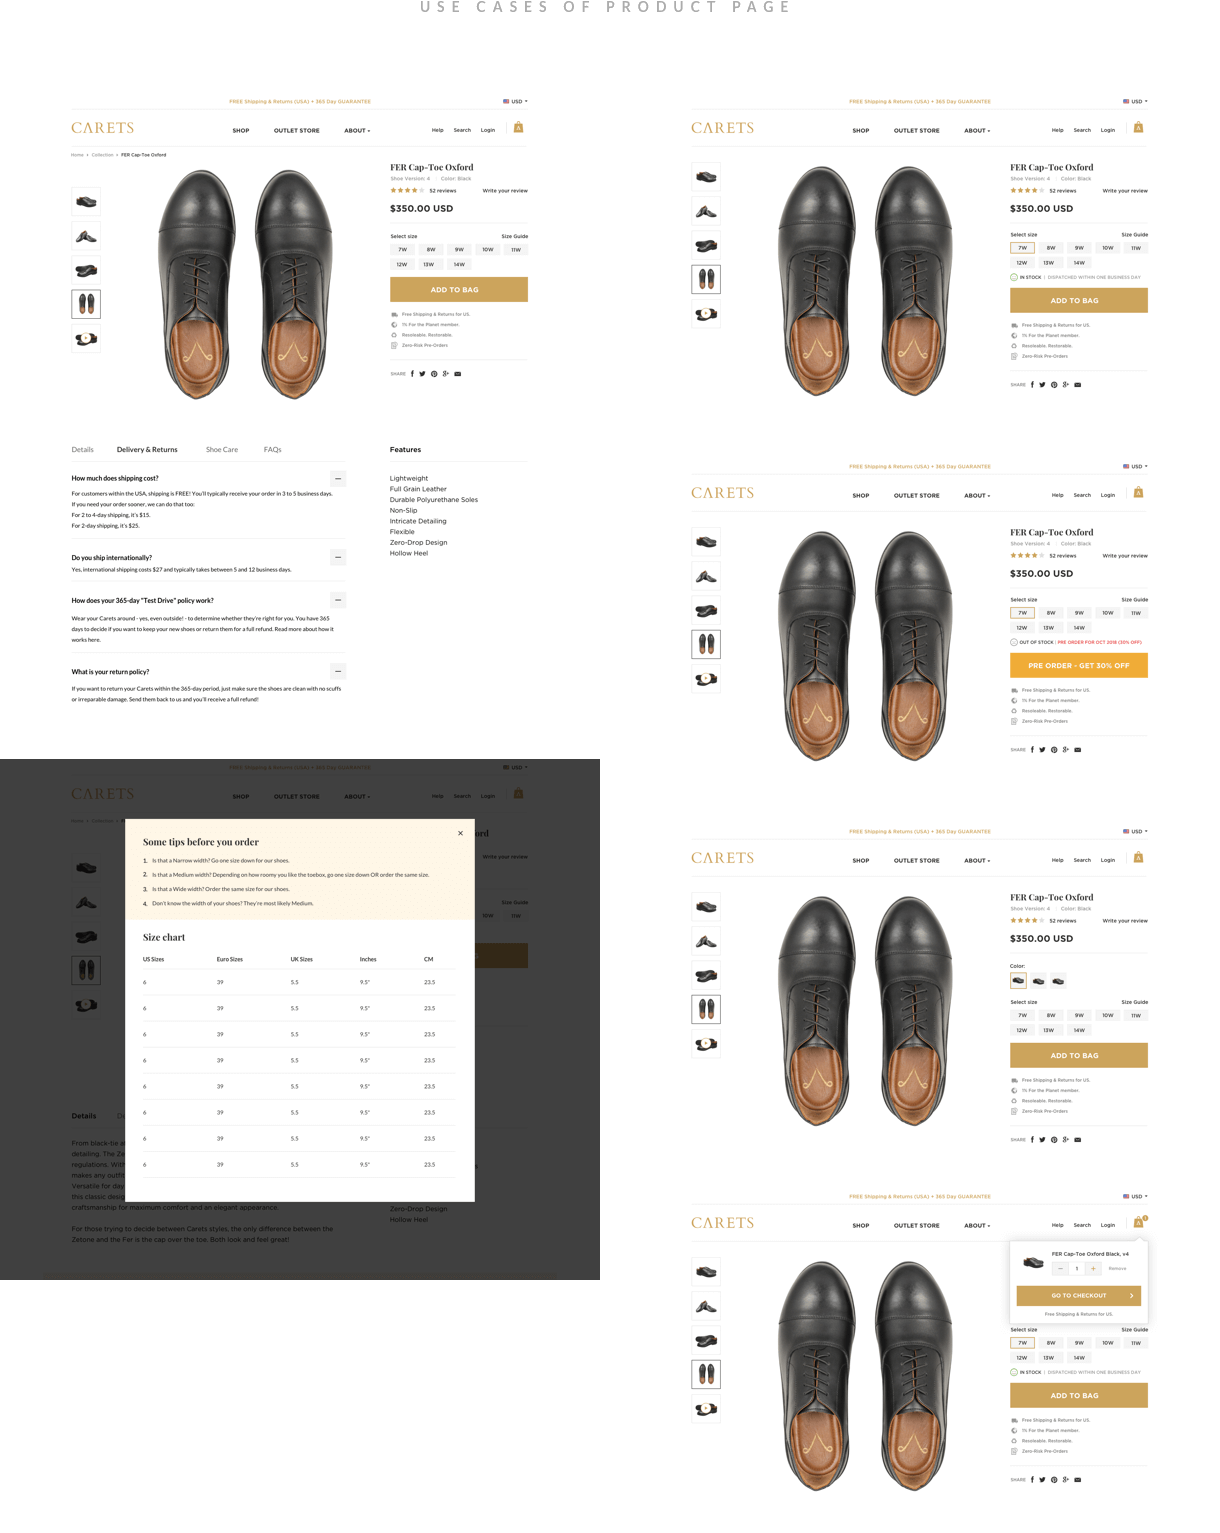 Product page cases